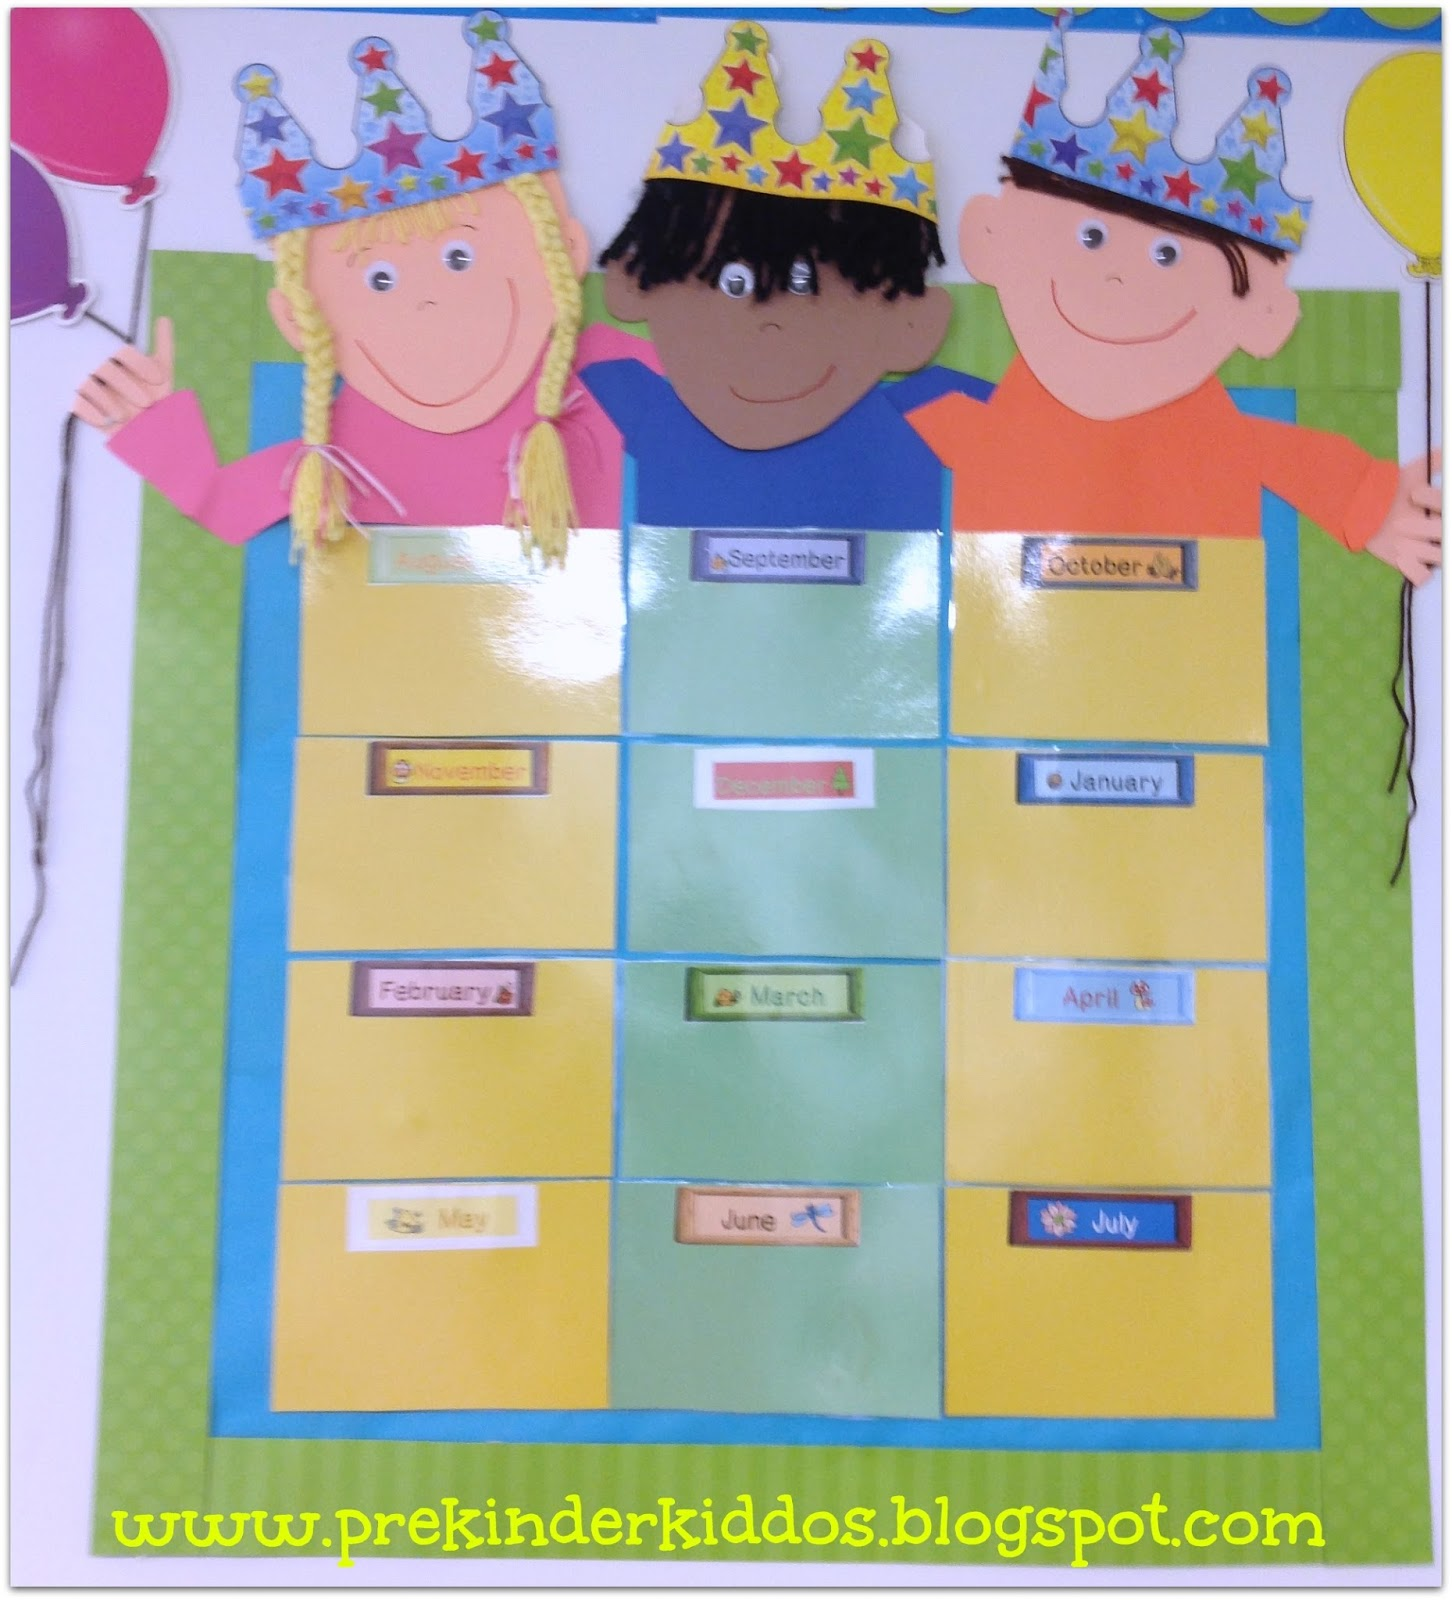 Classroom Ideas Charts : Images about classroom decoration ideas on pinterest